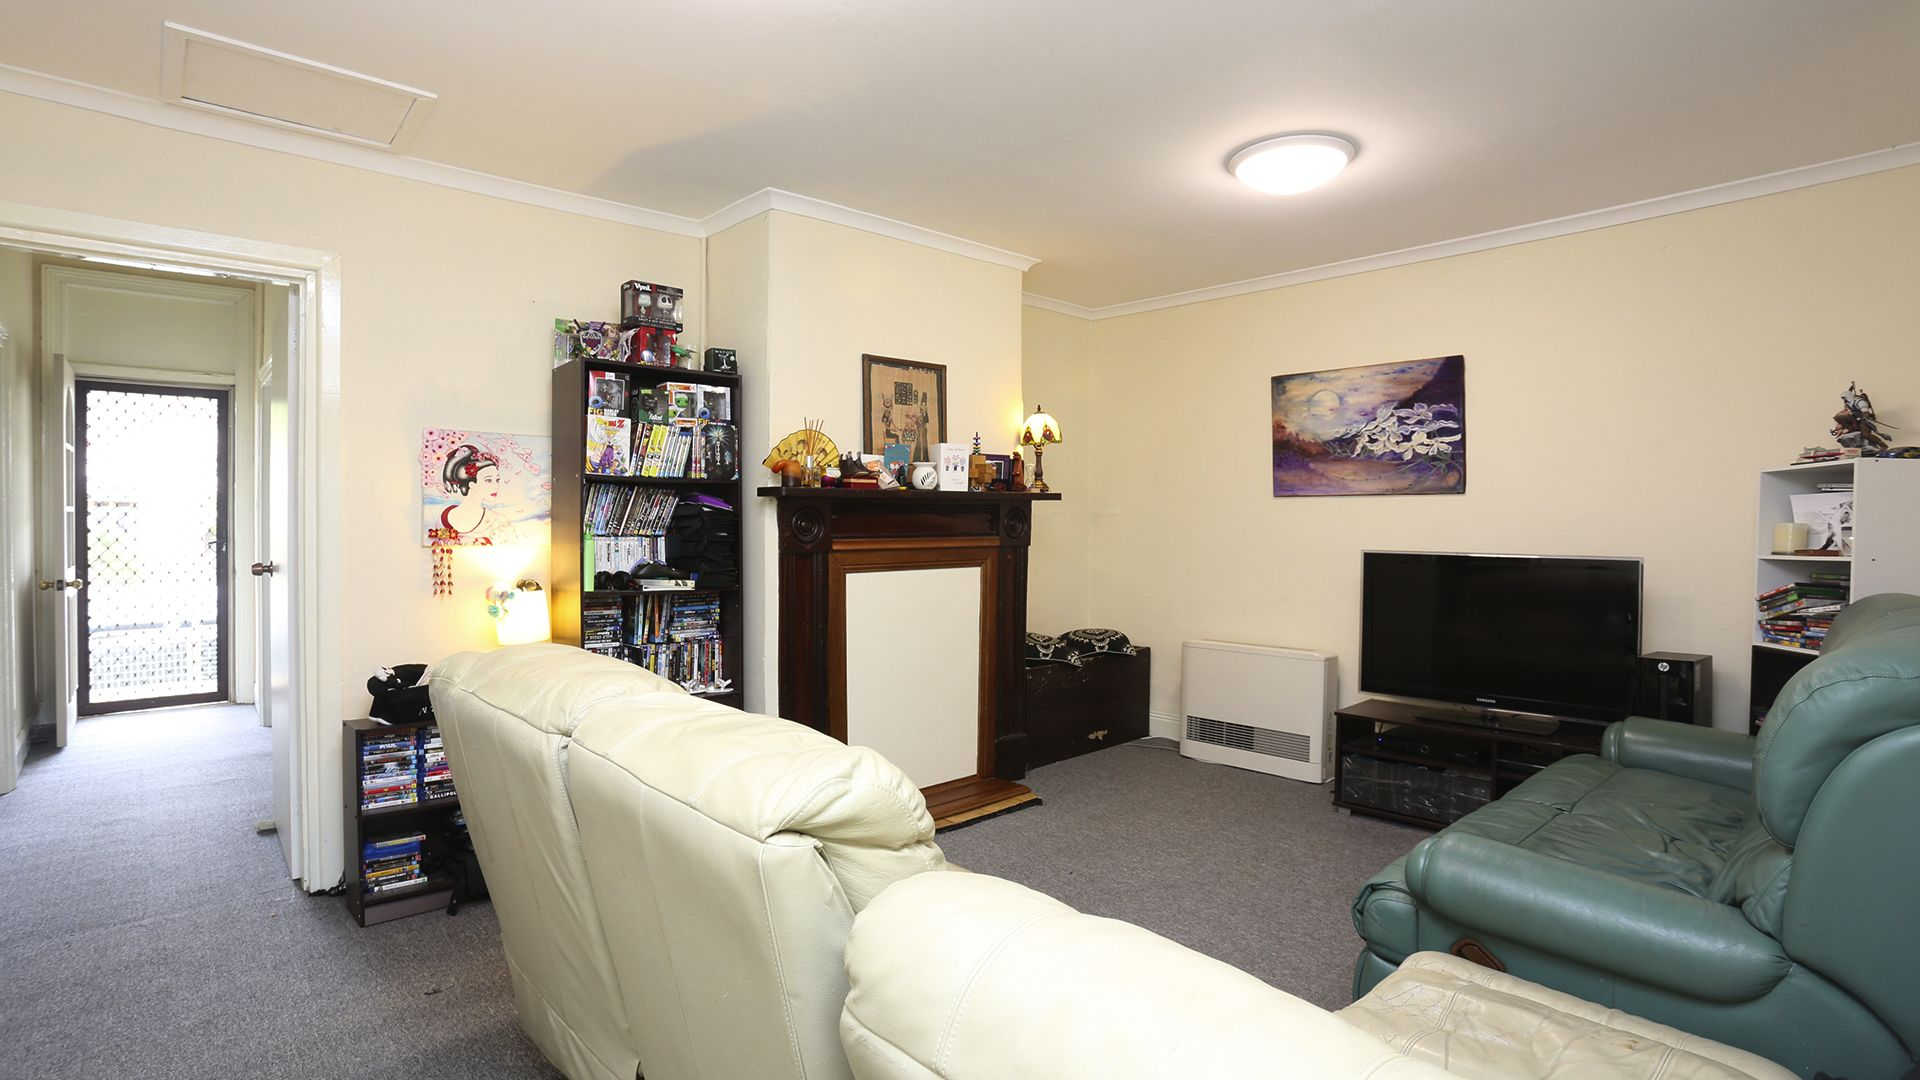 75 Inch St, Lithgow NSW 2790, Image 1